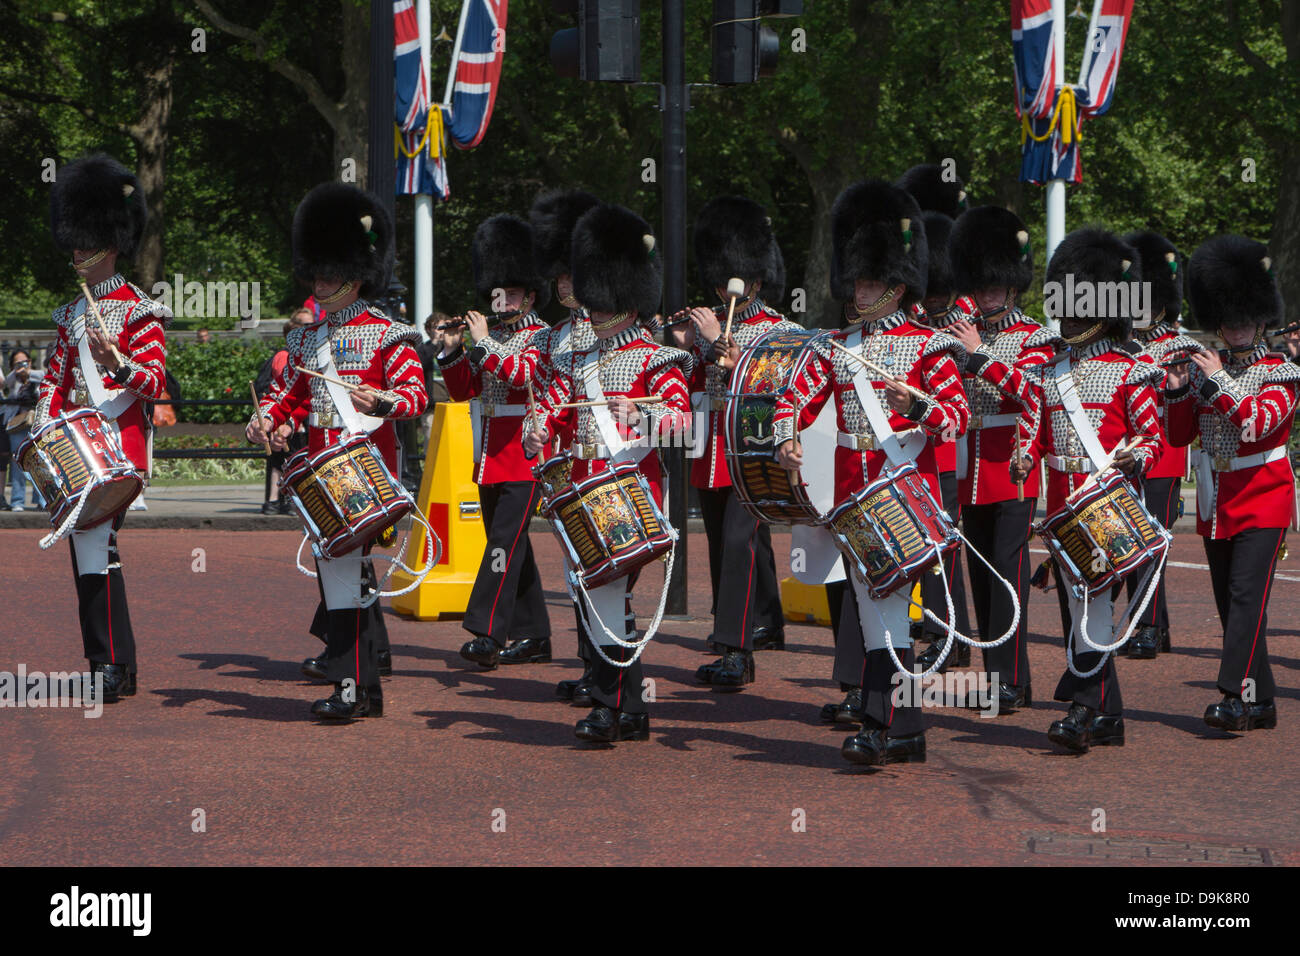 The band of the Welsh Guards marching in London. Stock Photo